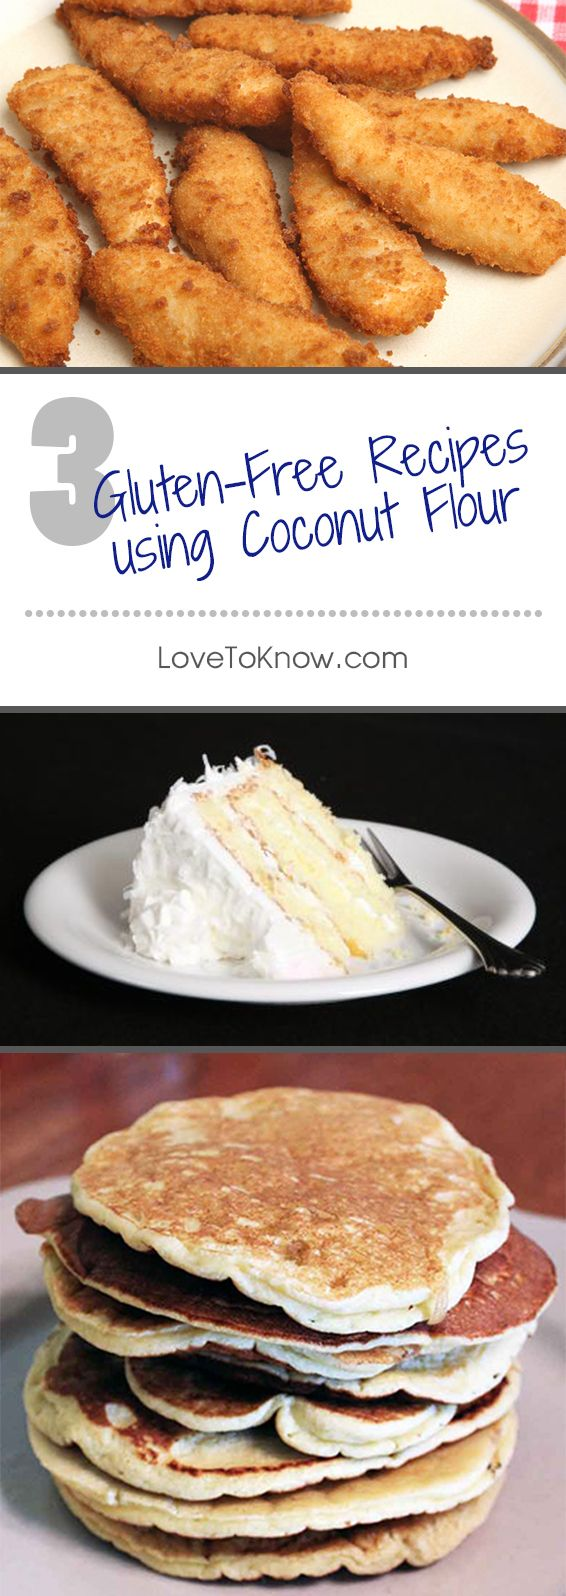 Coconut cake with coconut flour? Yes please!   Check out these three yummy gluten-free recipes made with coconut flour.